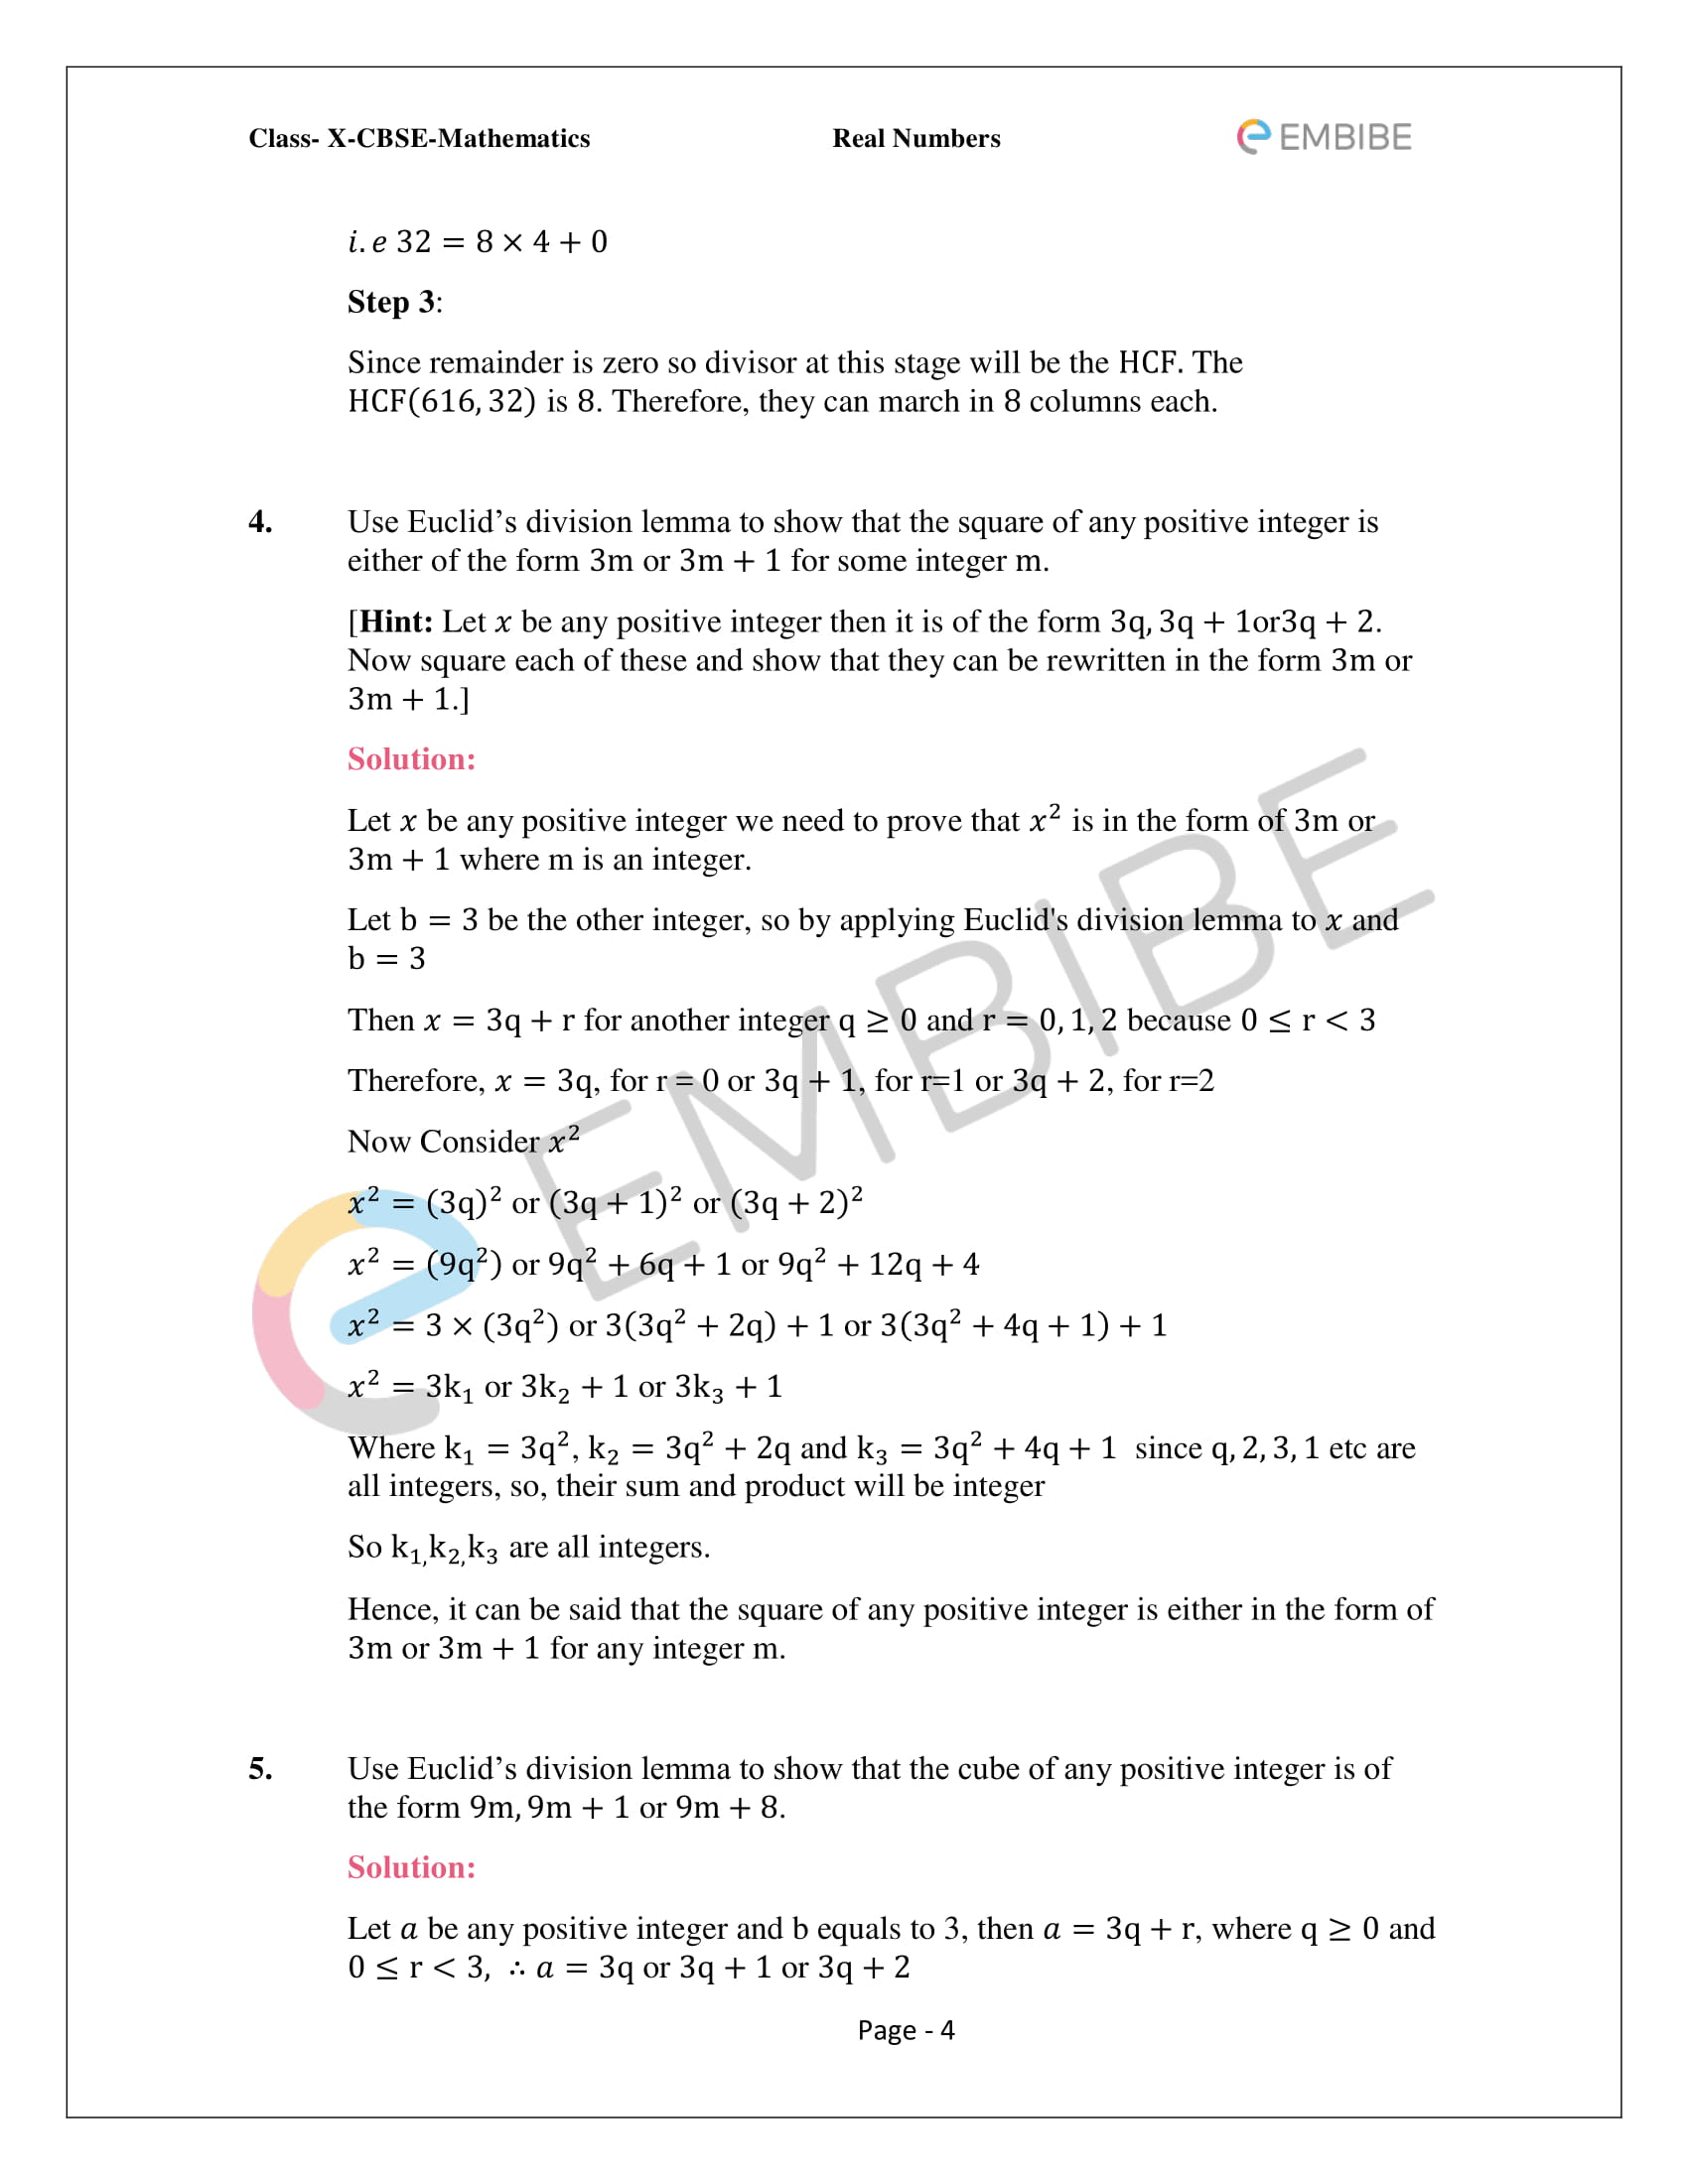 CBSE NCERT Solutions For Class 10 Maths Chapter 1 - Real Numbers - 4